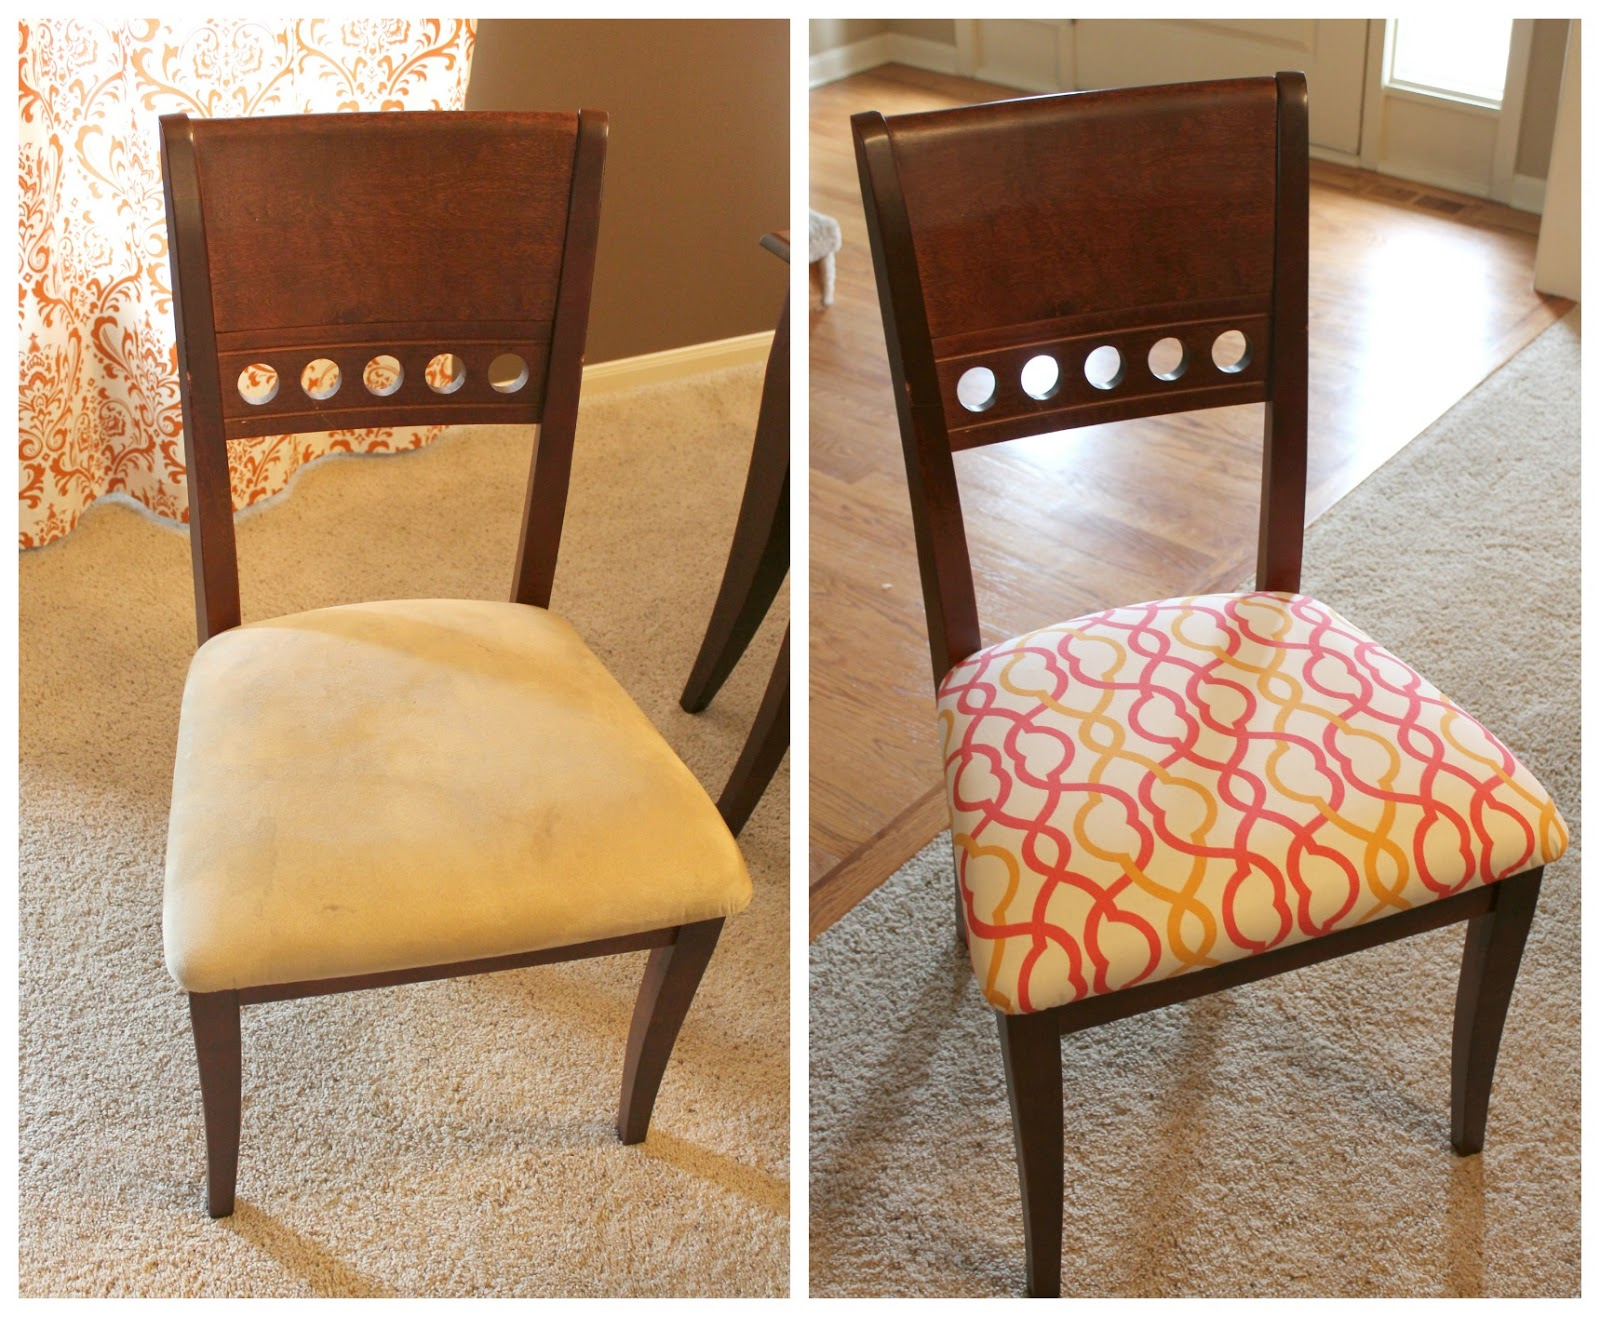 Reupholstering A Dining Chair - How to reupholster a dining room chair